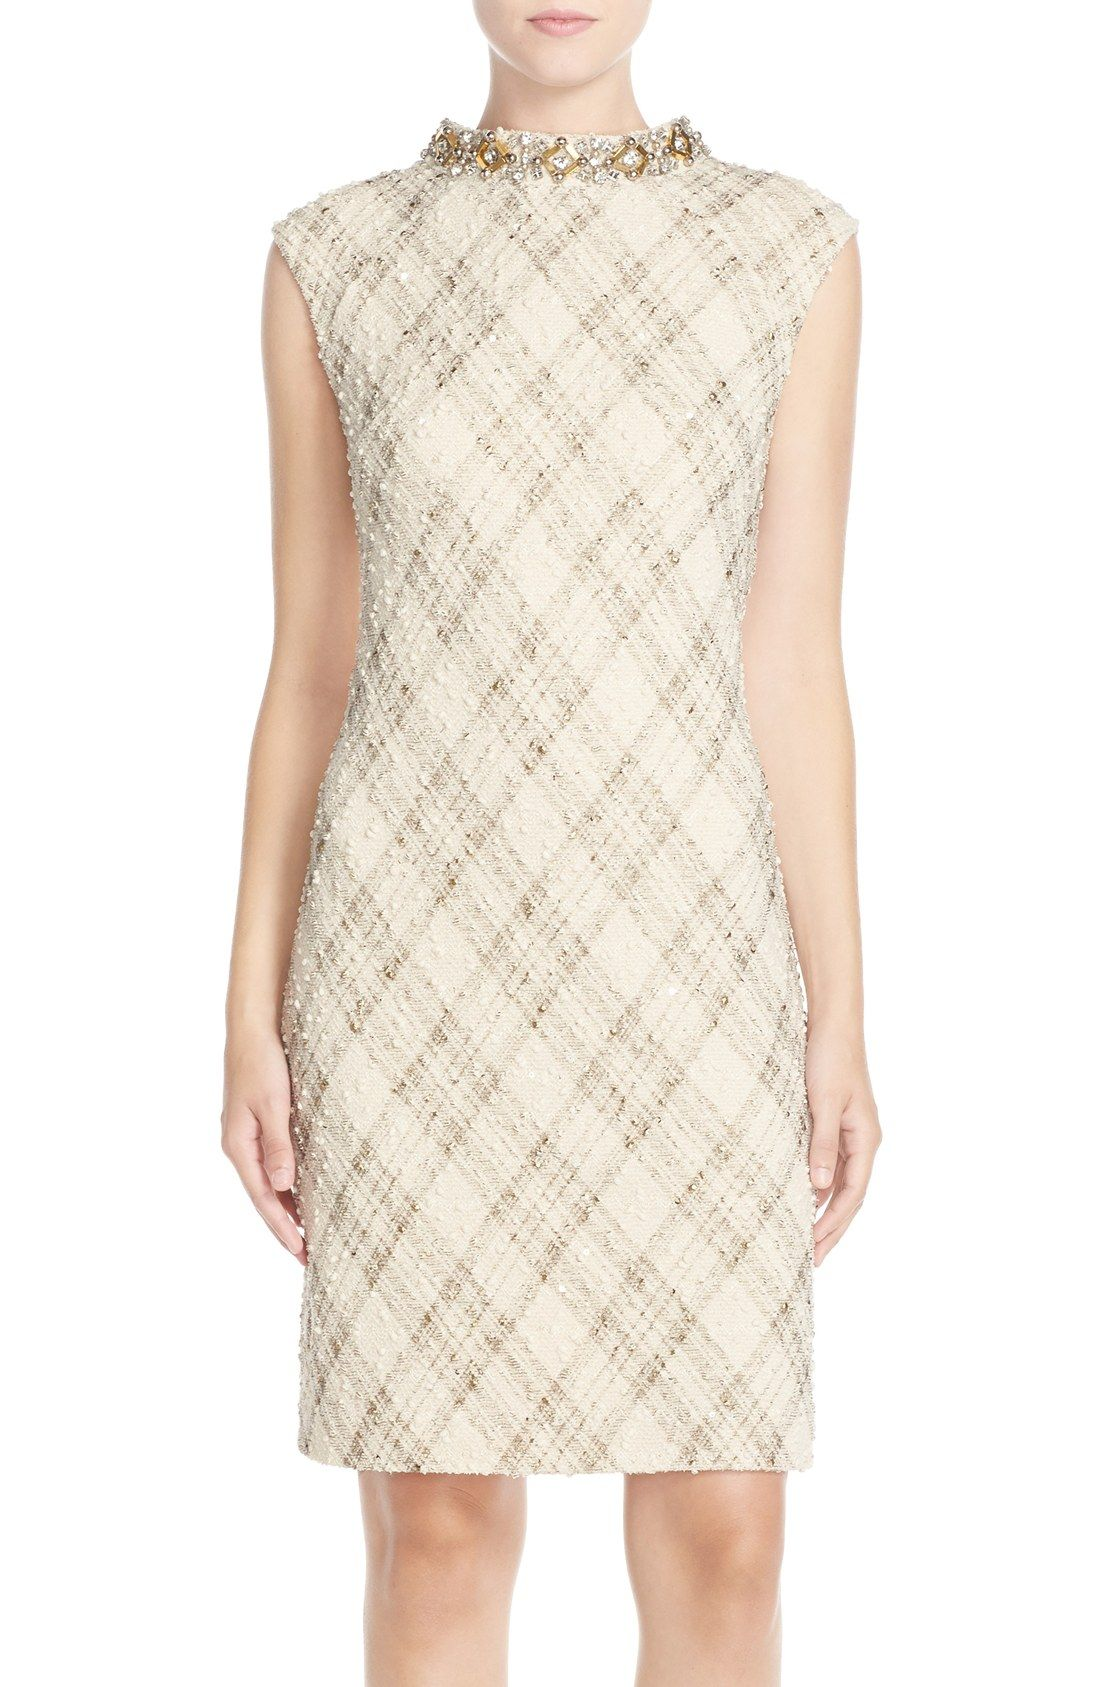 Shift dresses for wedding guests  Vince Camuto Embellished Foiled Bouclé Shift Dress Regular u Petite